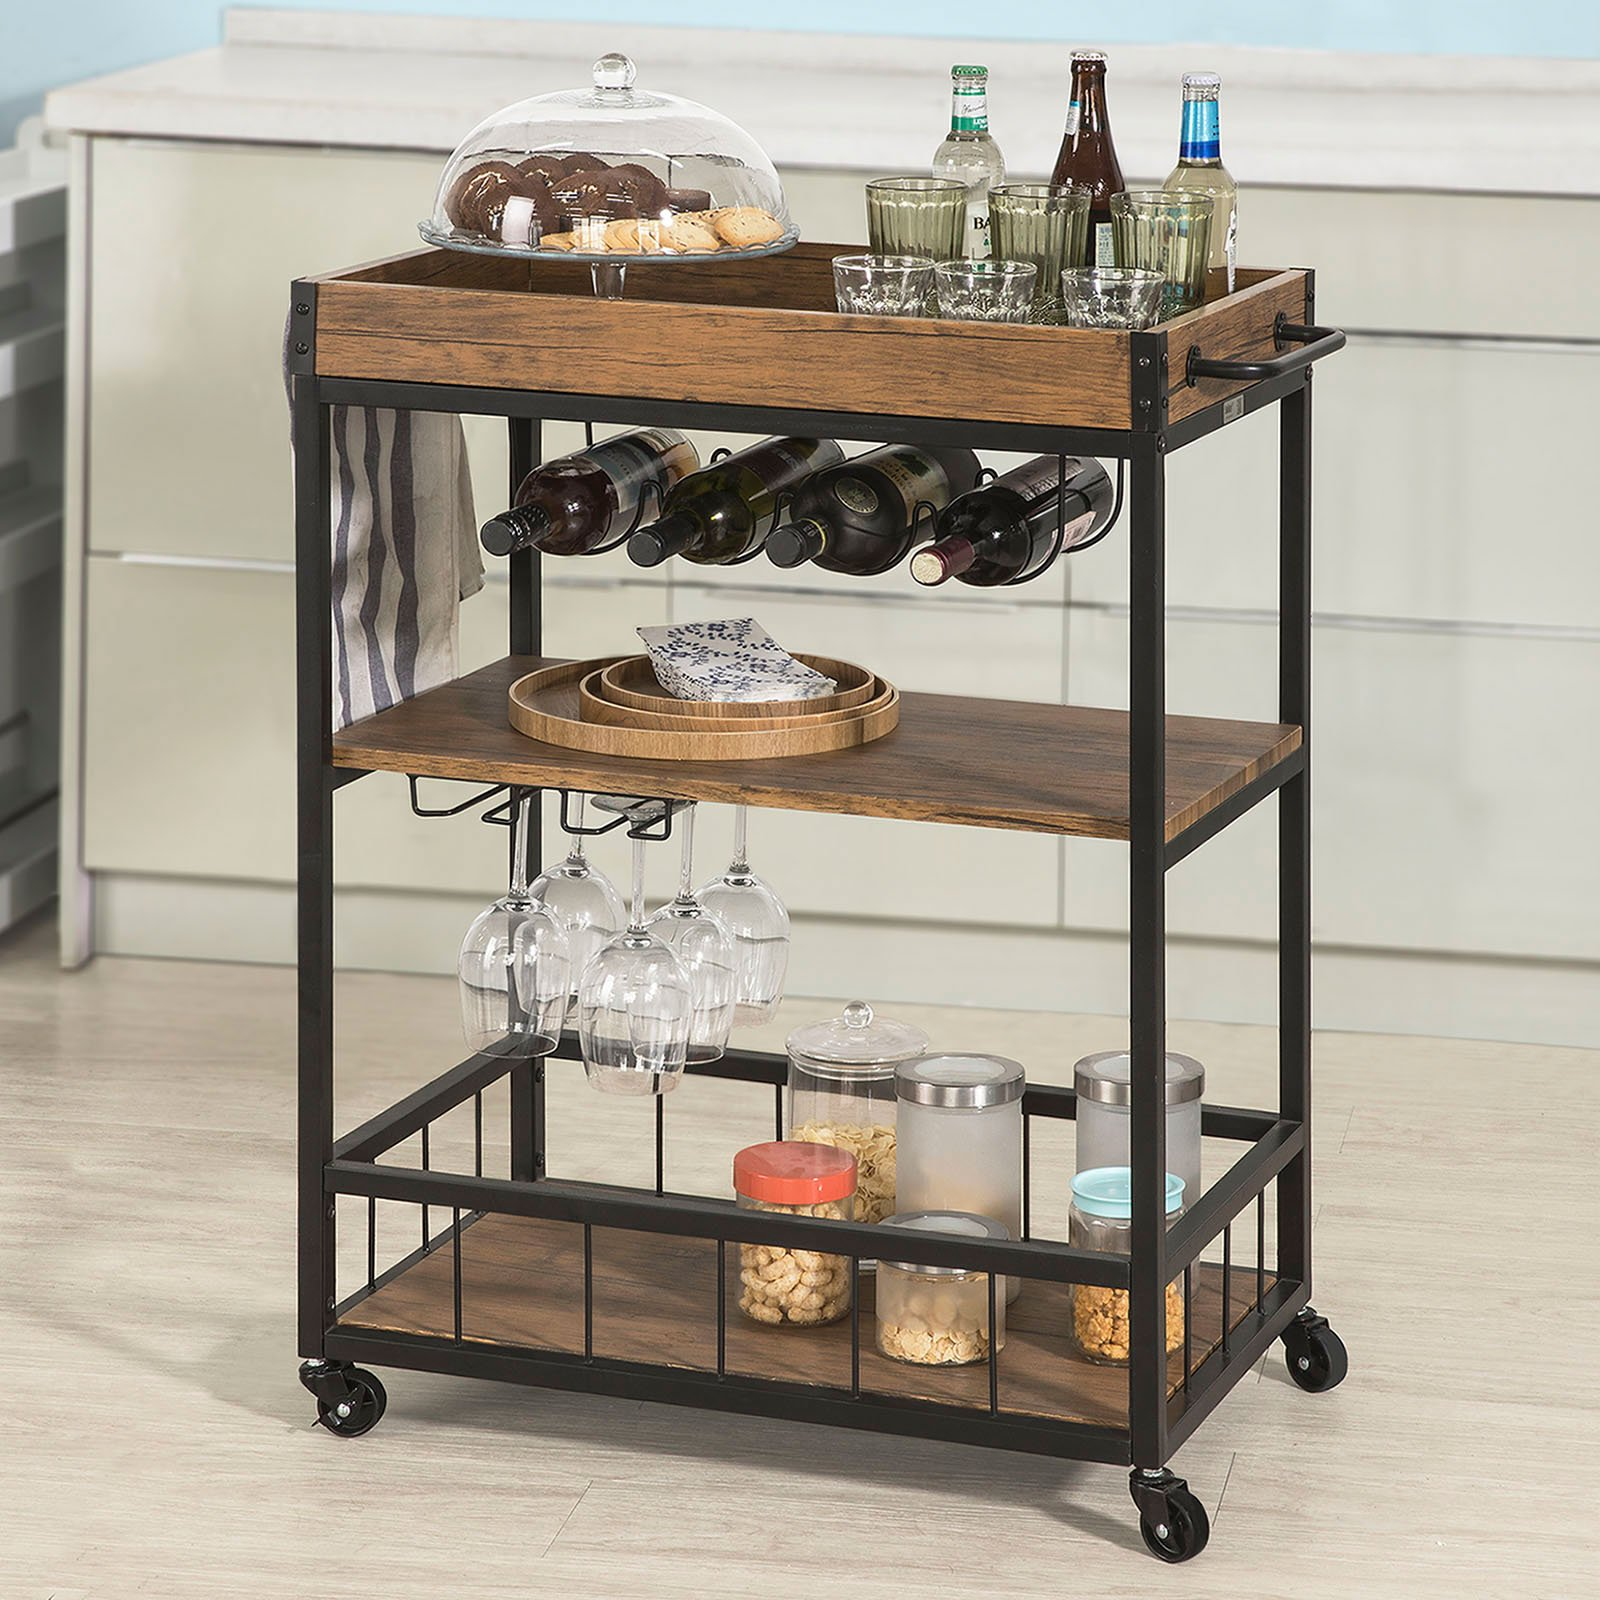 Haotian FKW56-N, Bar Serving Cart Home Myra Rustic Mobile Kitchen Serving cart,Industrial Vintage Style Wood Metal Serving Trolley by Haotian